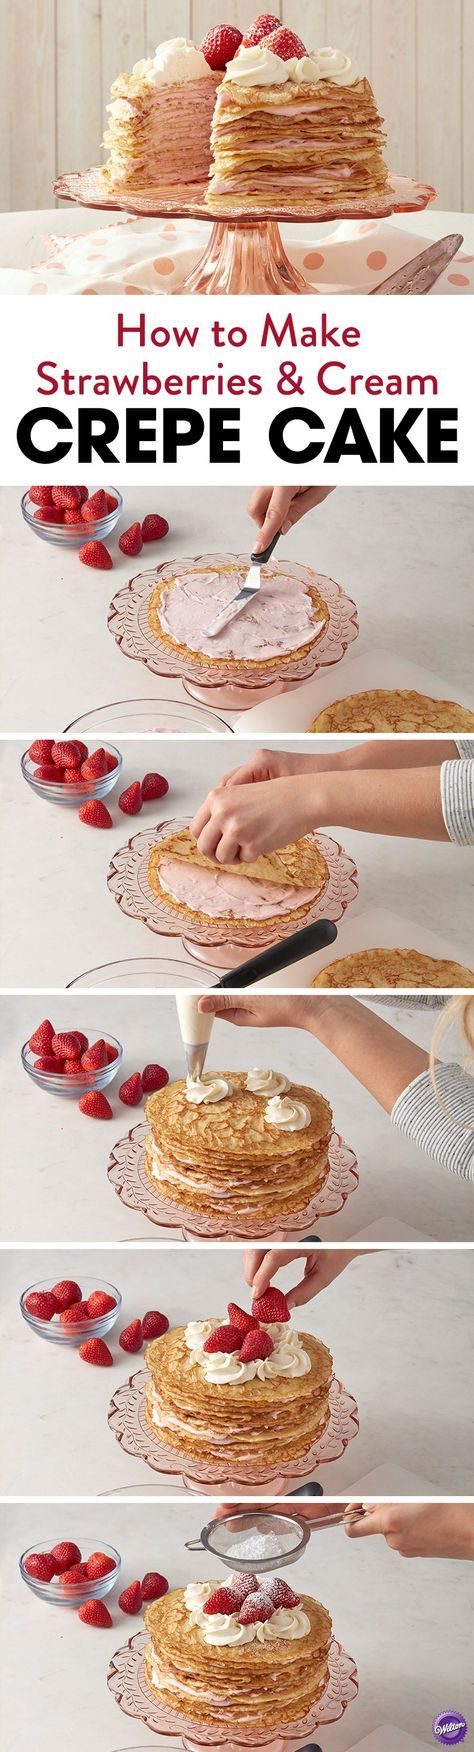 How to Make Strawberries & Cream Crepe Cake - Topped with whipped cream and fresh strawberries, this beautiful Strawberry and Cream Crepe Cake is stacked high with homemade crepes and a sweet strawberry filling. An easy and elegant cake that's great for any occasion or celebration, this strawberry and cream crepe cake showcases an impressive stack of layers when cut open.